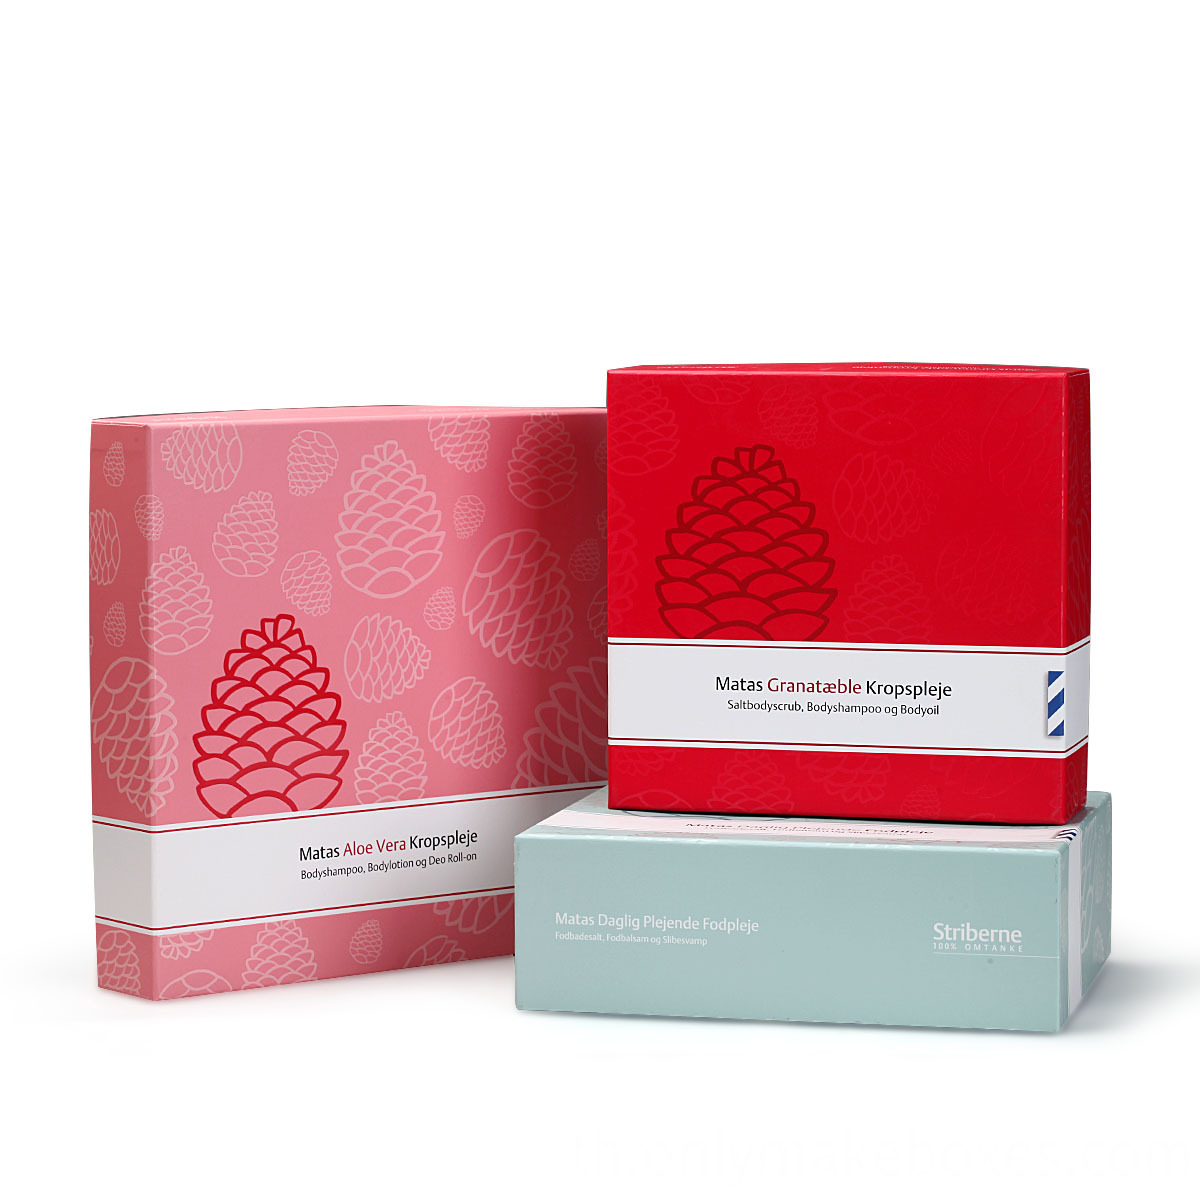 skin care box packaging